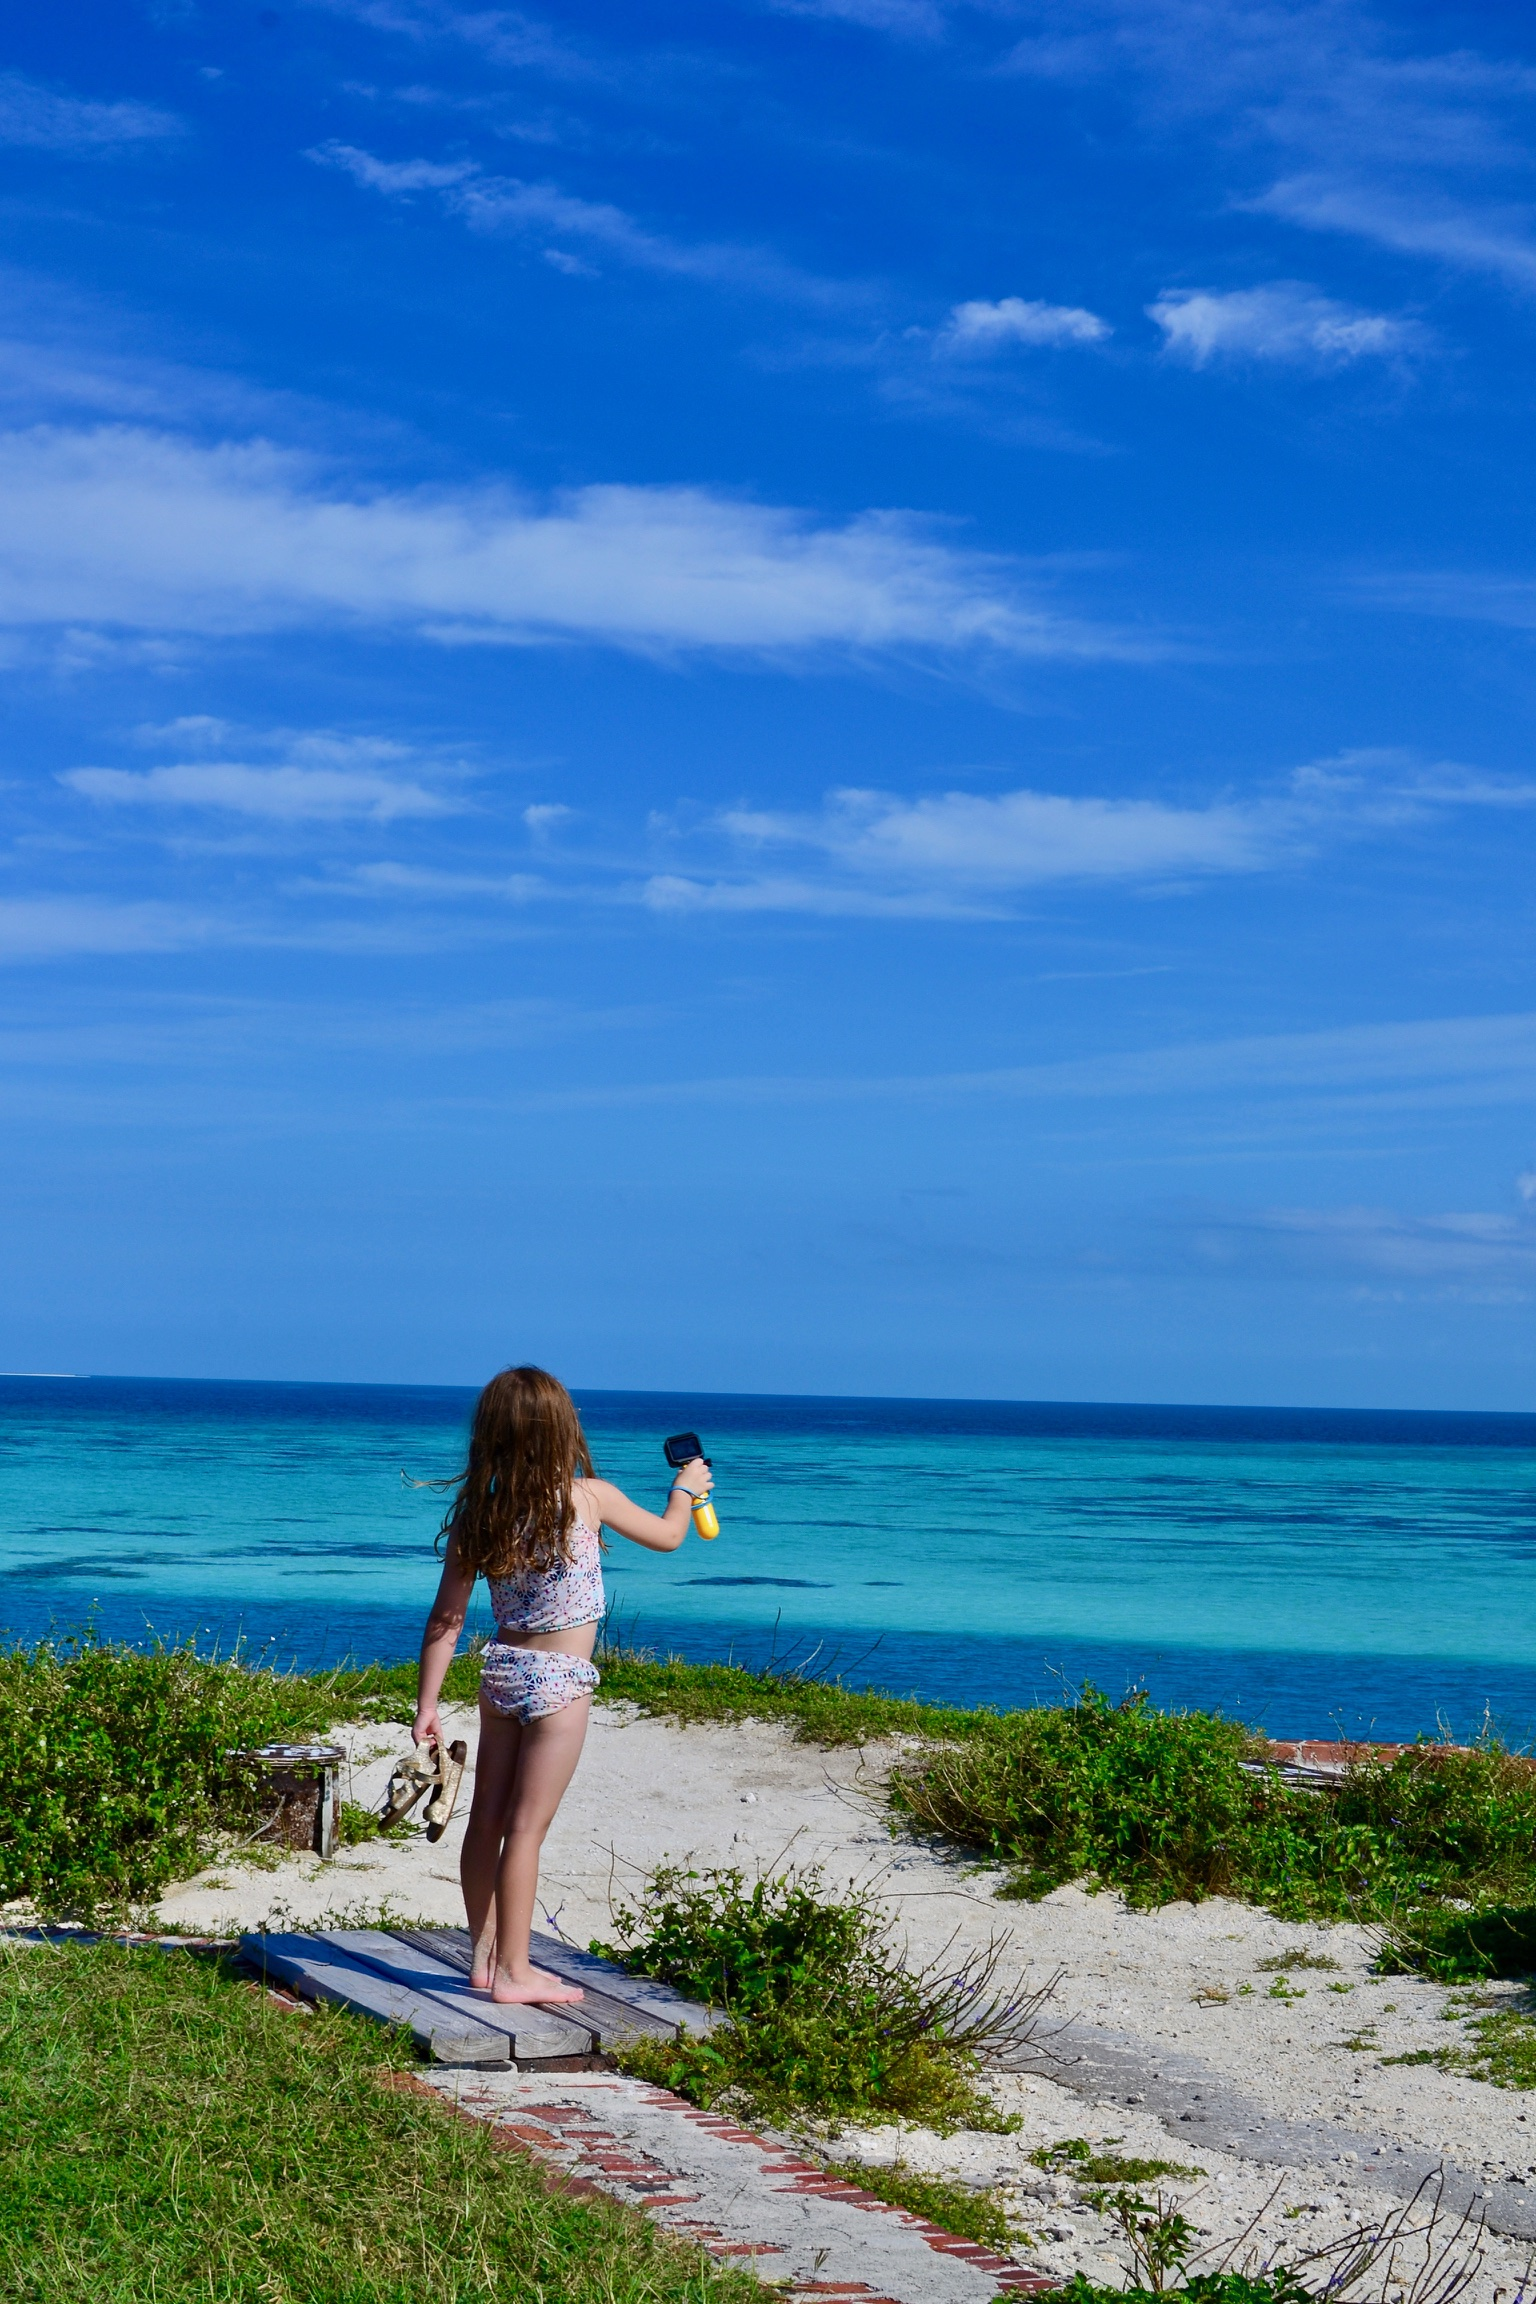 My daughter using our GoPro Hero to take photos and videos in the Dry Tortugas